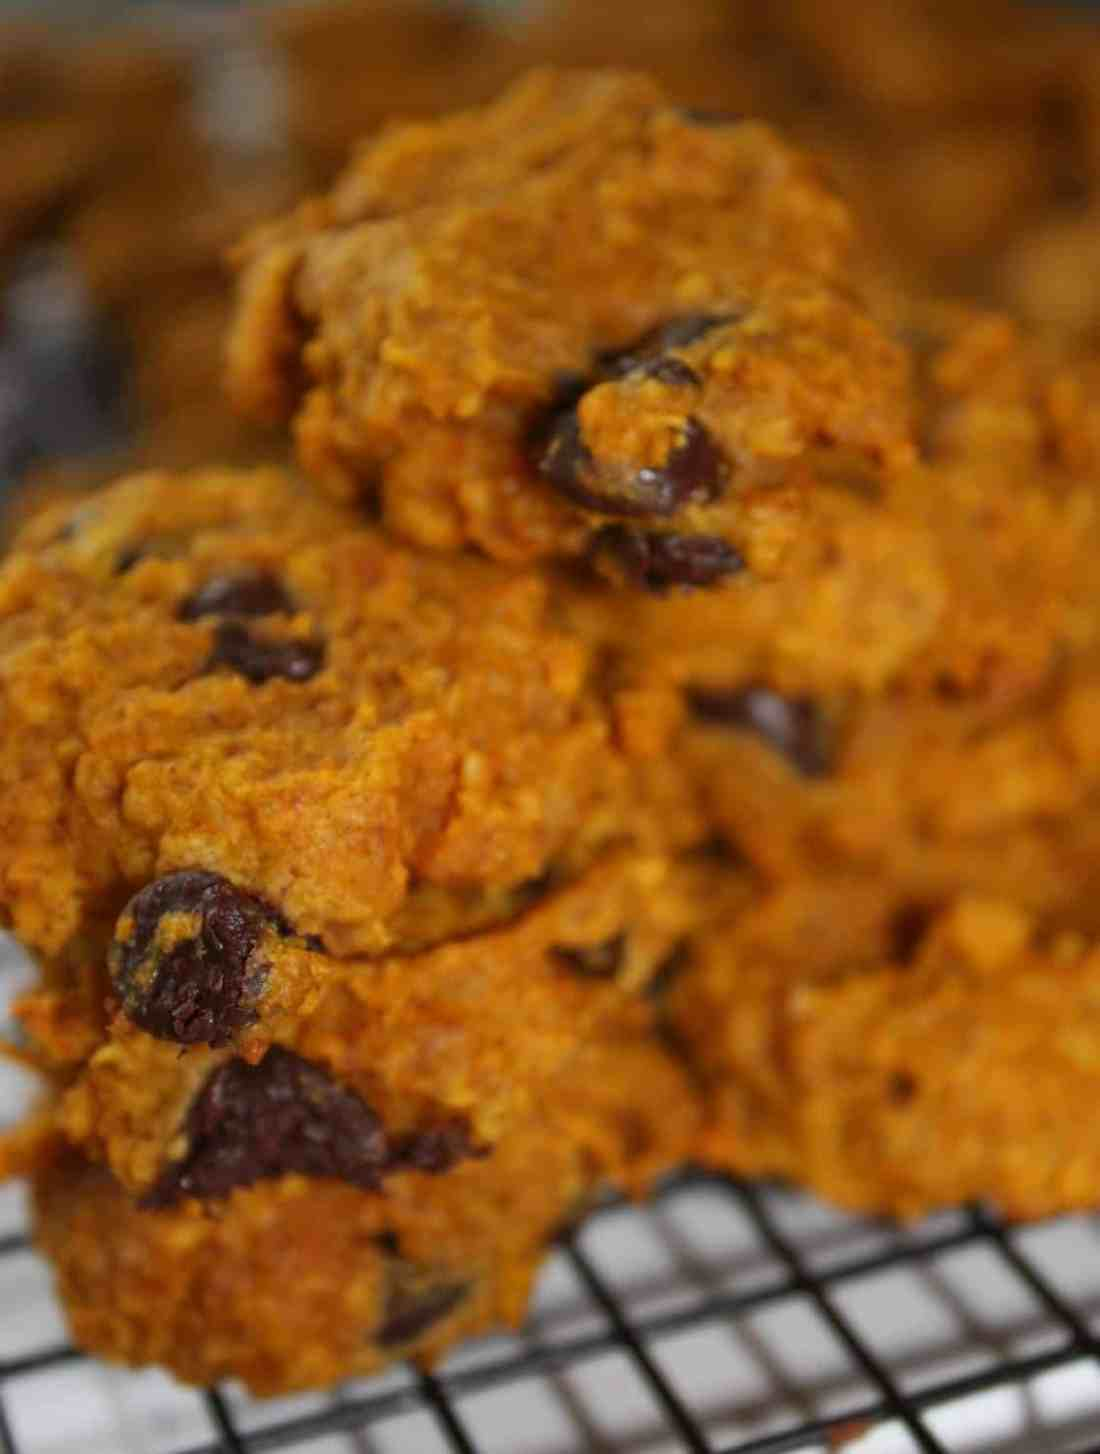 As fall rains turn to snow I am just about done with pumpkin recipes. These Pumpkin Cookies include the flavours of fall without overdoing the sweetness.